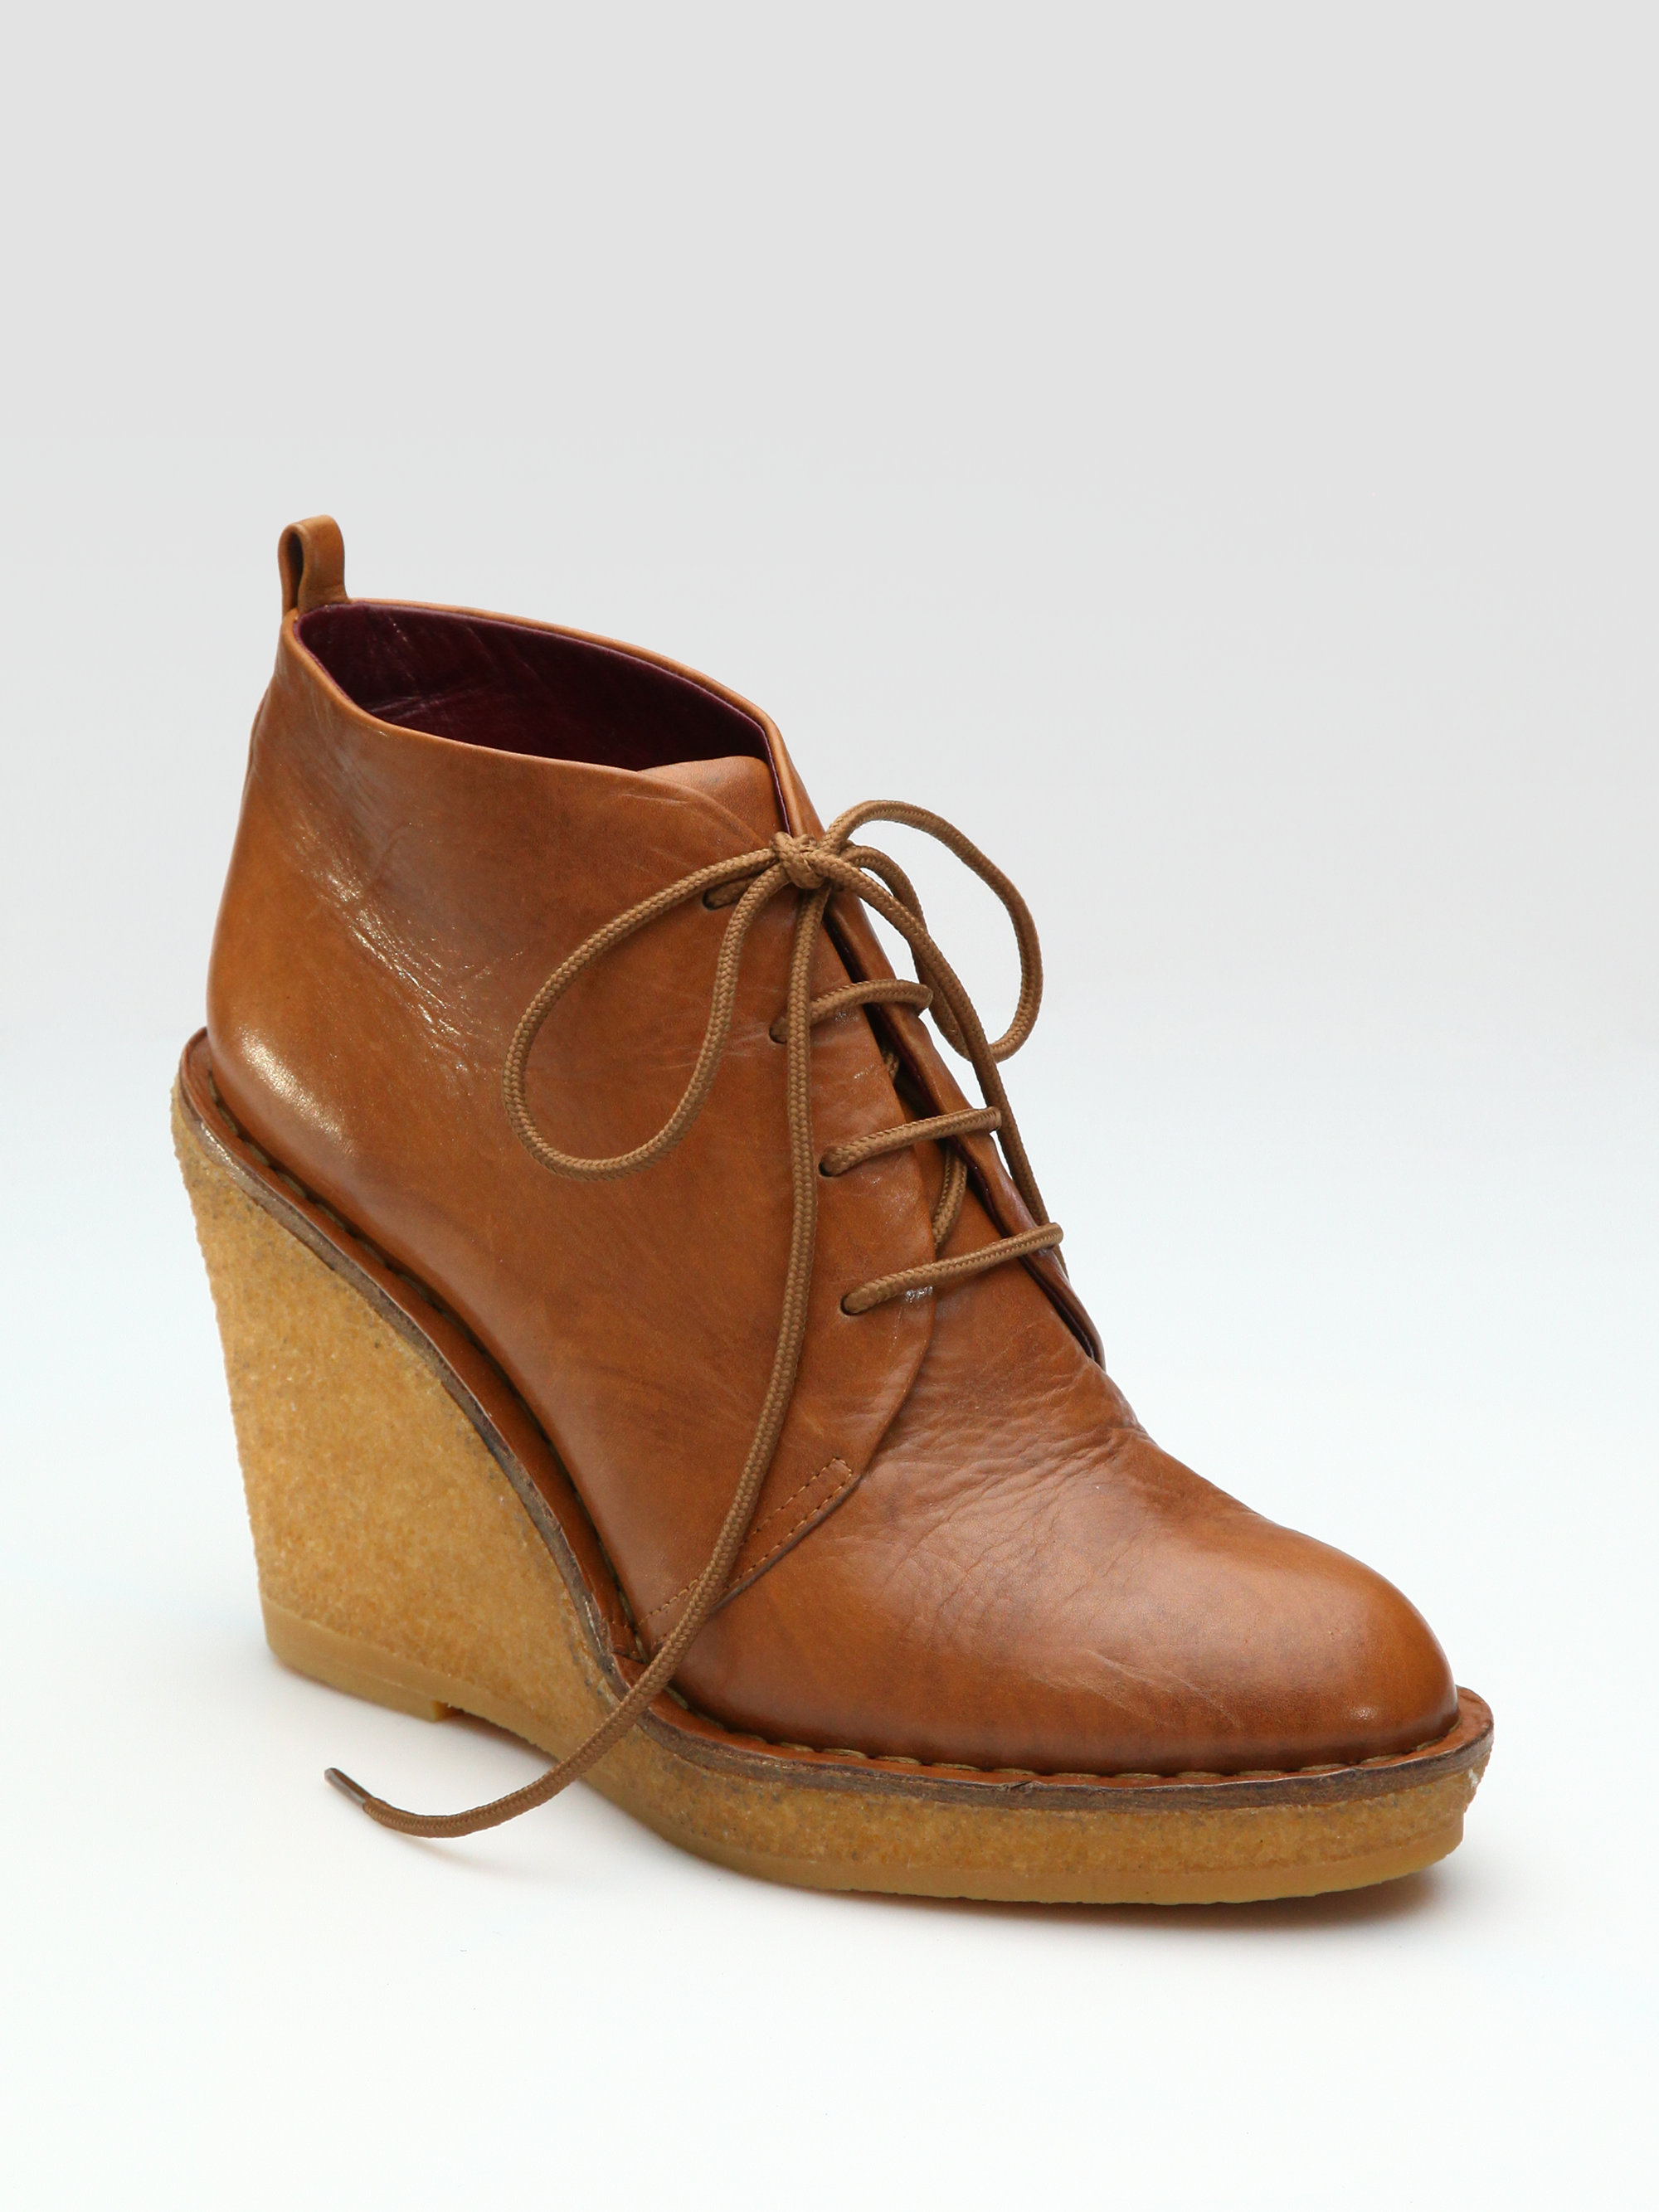 marc by marc jacobs wax wedge ankle boots in brown cognac. Black Bedroom Furniture Sets. Home Design Ideas